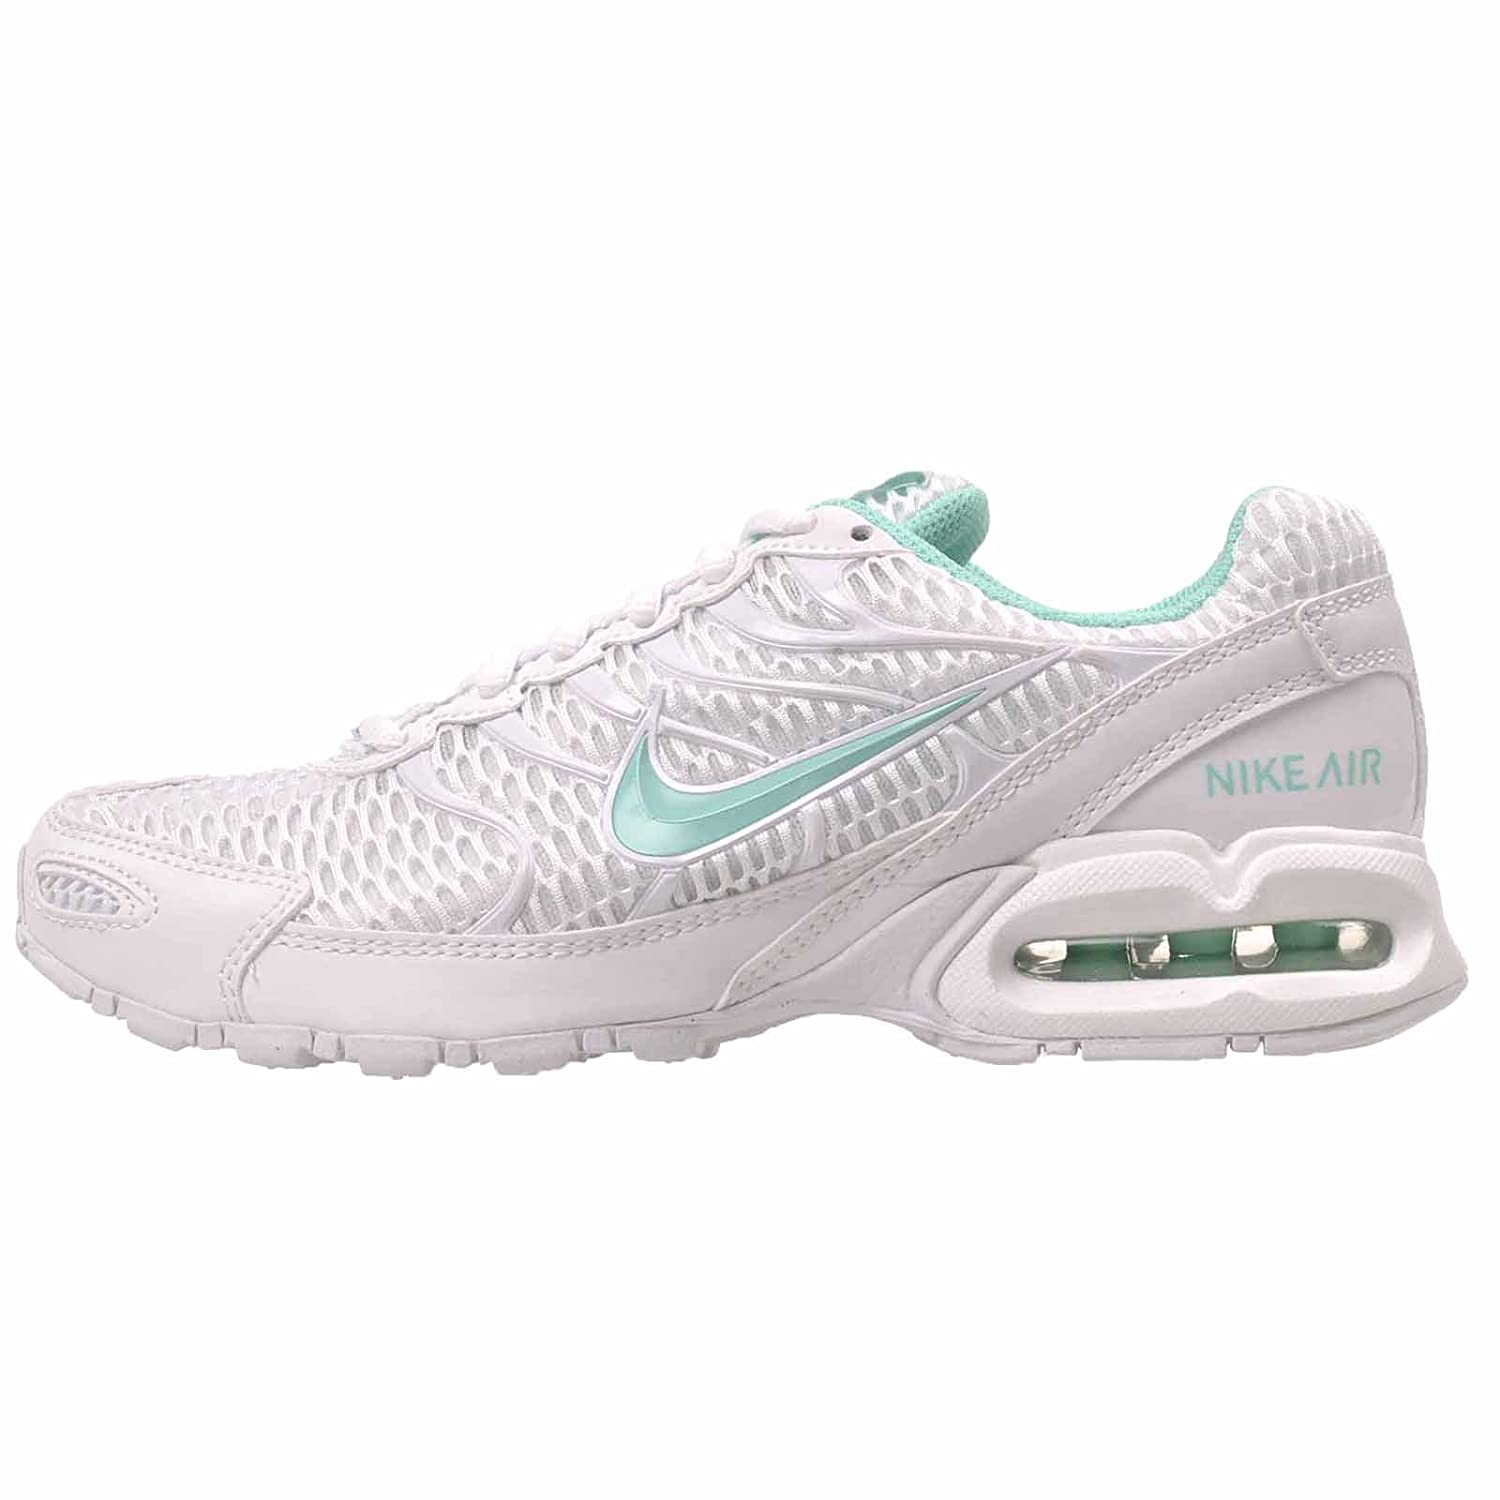 Man's/Woman's Nike Women's WMNS Air Max Torch 4, White/Hyper fashion Turquoise Modern and elegant fashion White/Hyper Won highly appreciated and widely trusted at home and abroad Fine wild GW12347 d68c71